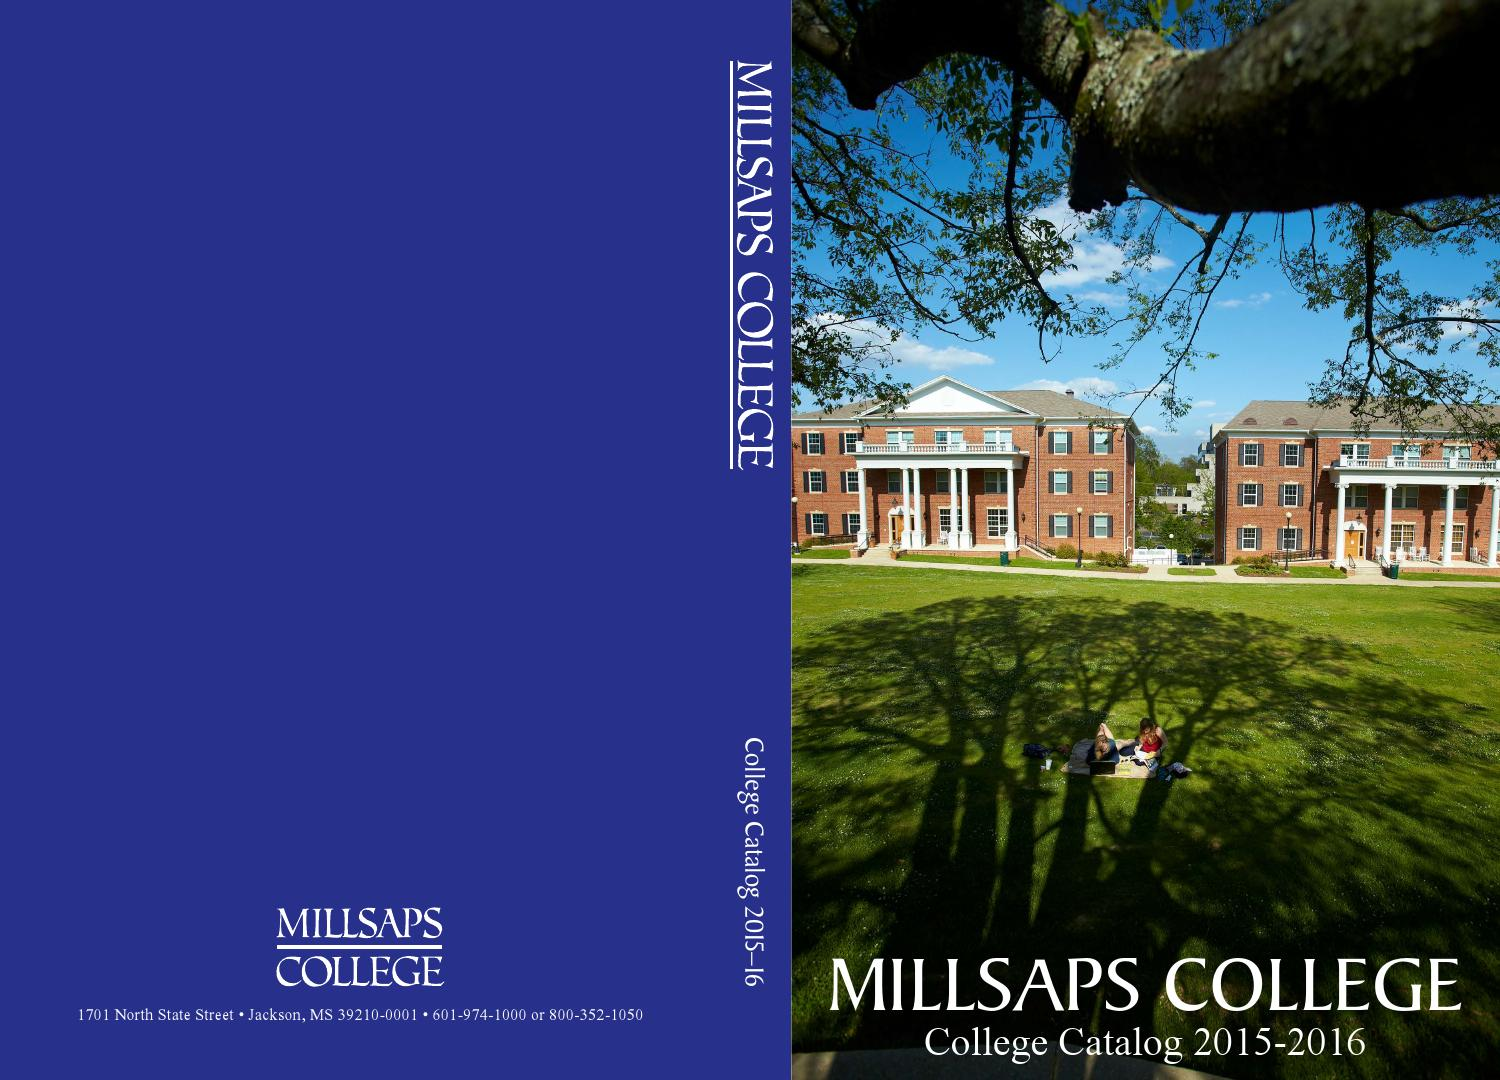 Millsaps college gay statistics charts images